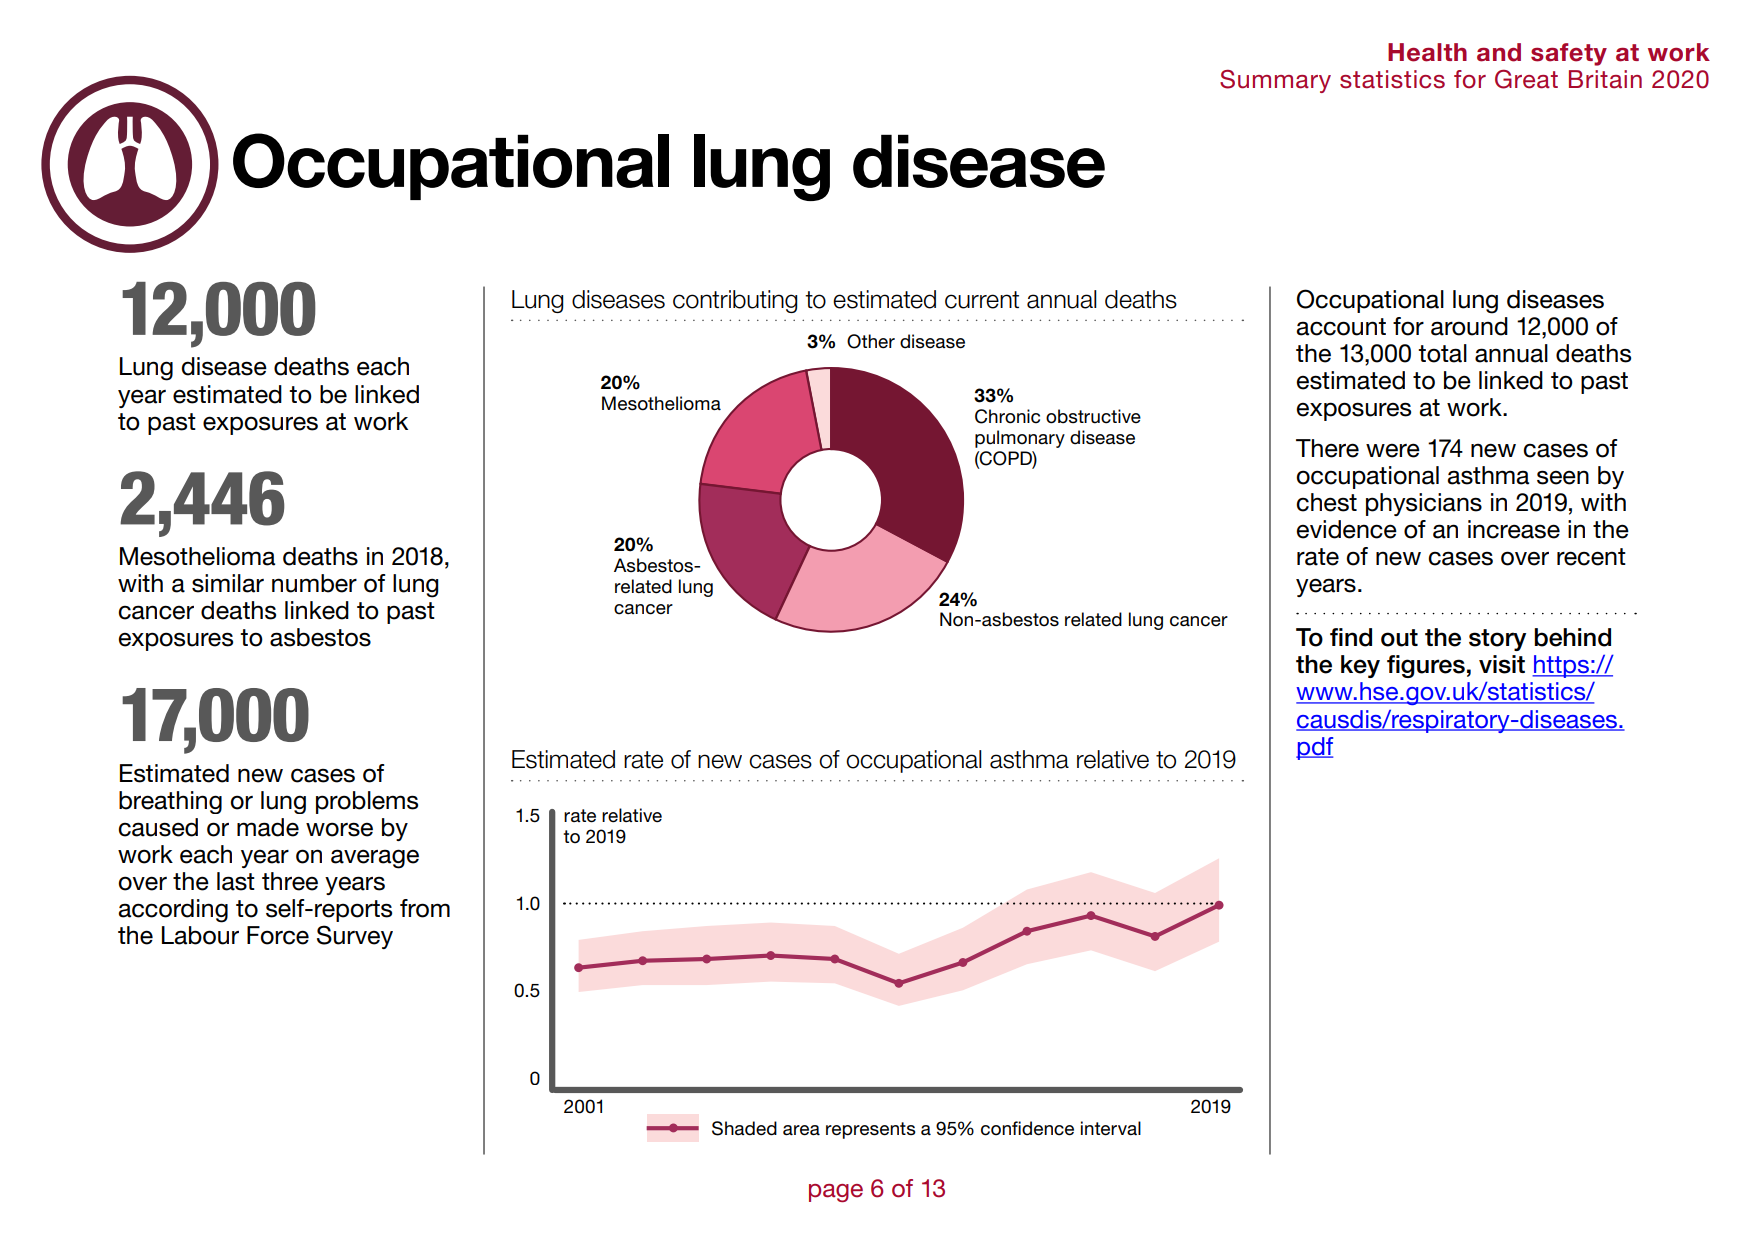 Health and safety at work stats 2020: Occupational lung disease